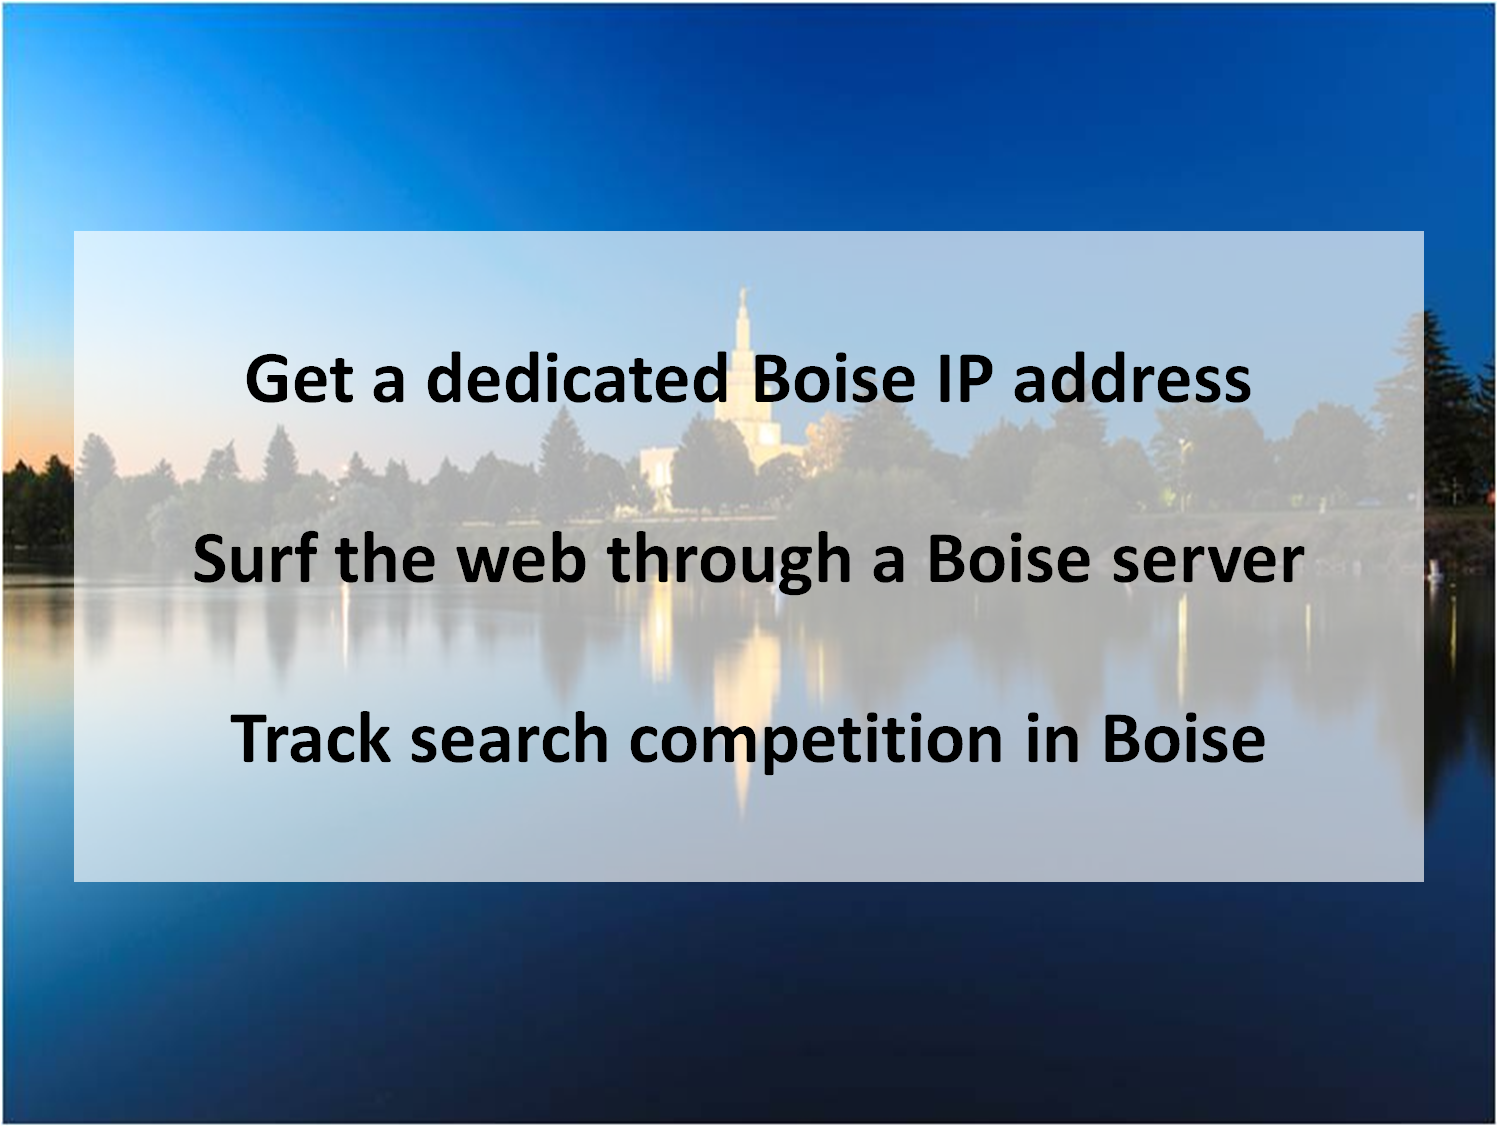 Get A Dedicated Boise Ip Address Surf The Web Through A Boise Server And Track Search Competition In Boise Proxy Server Competition Idaho